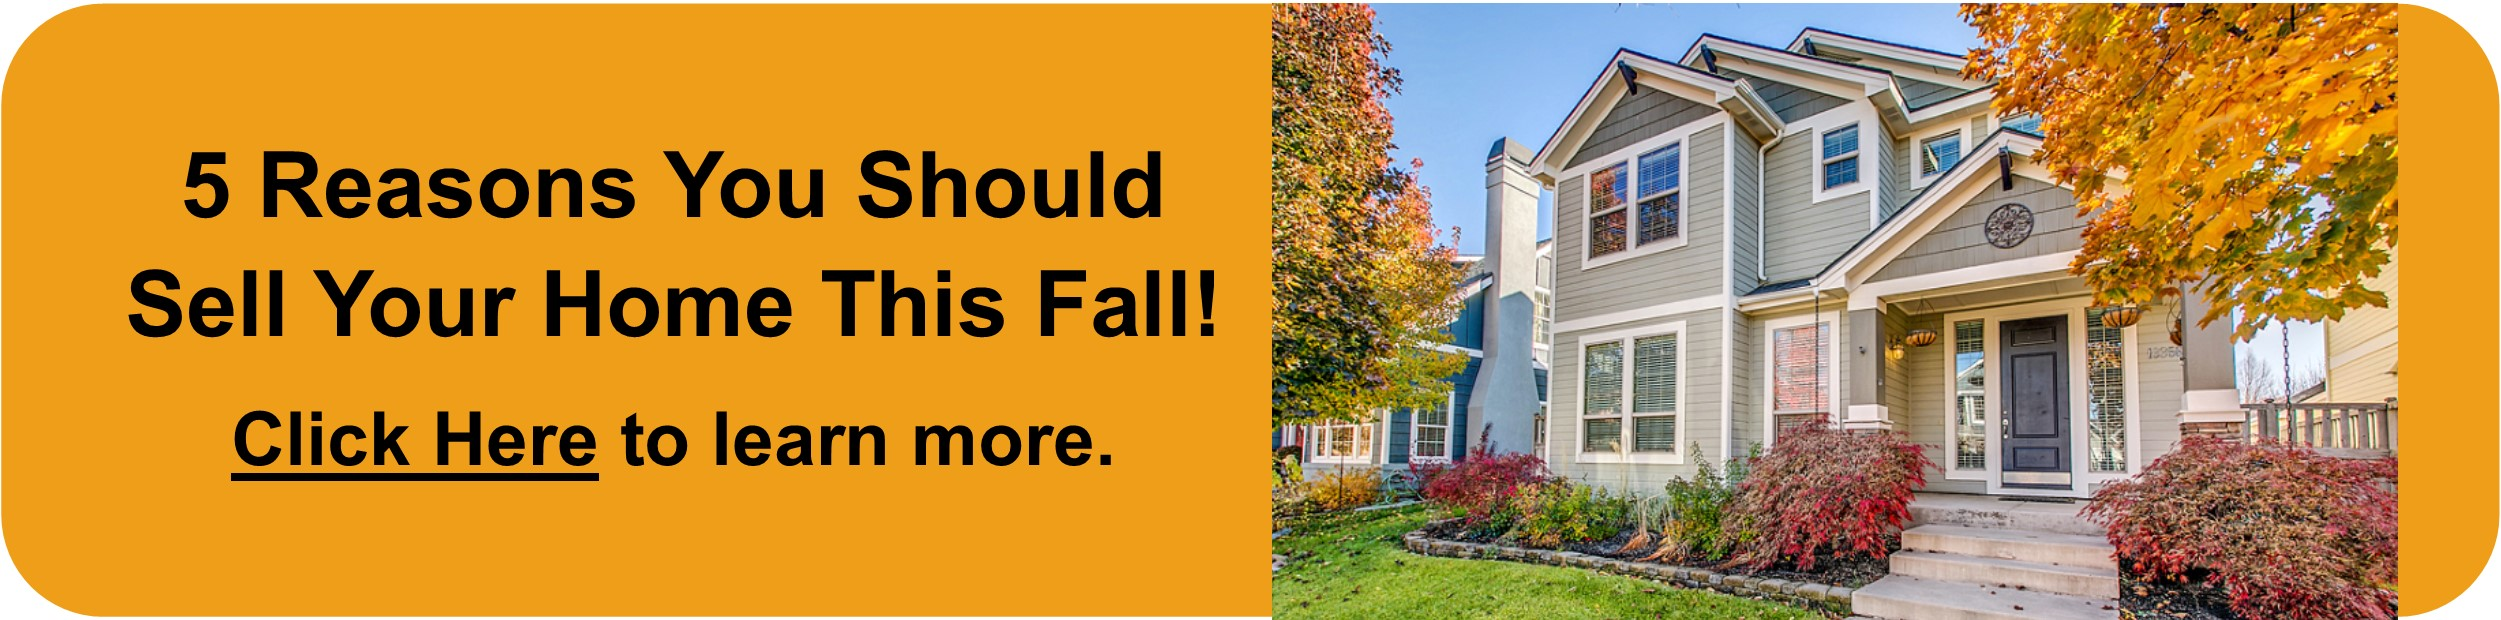 5 Reasons You Should Sell Your Home This Fall!